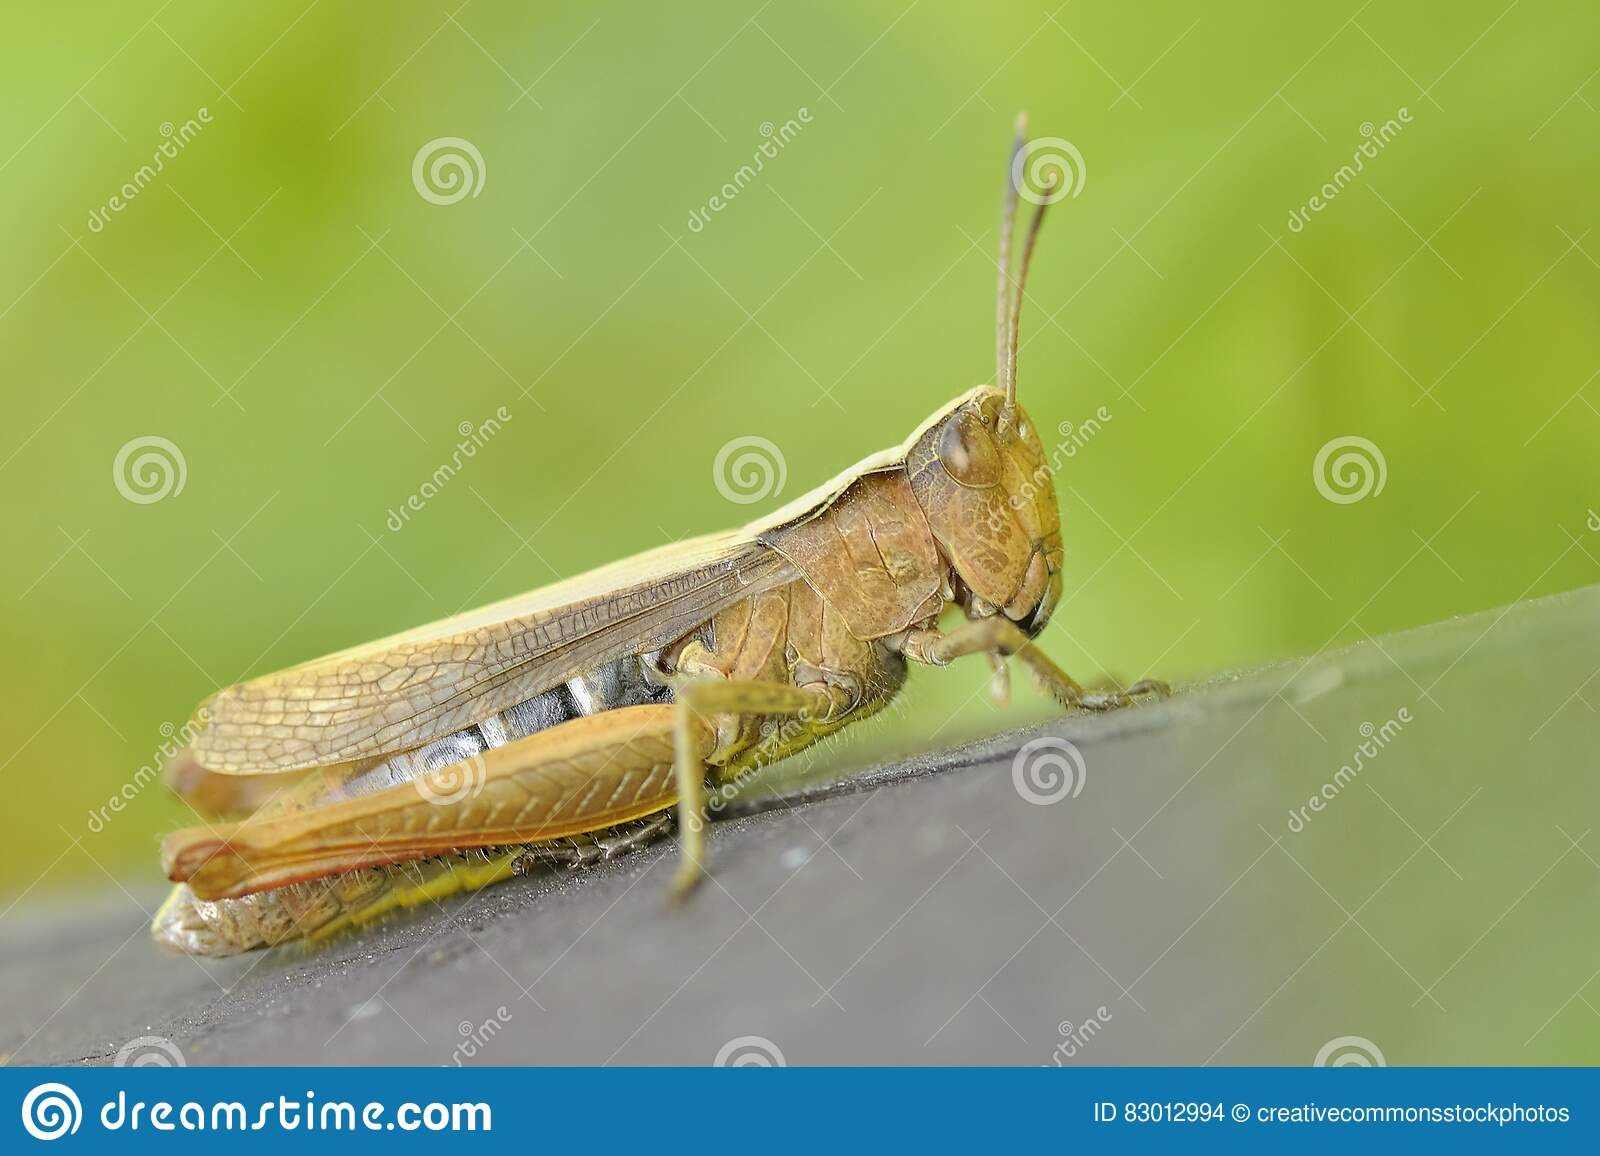 Download Green And Brown Grasshopper Stock Photo - Image of close, wildlife: 83012994